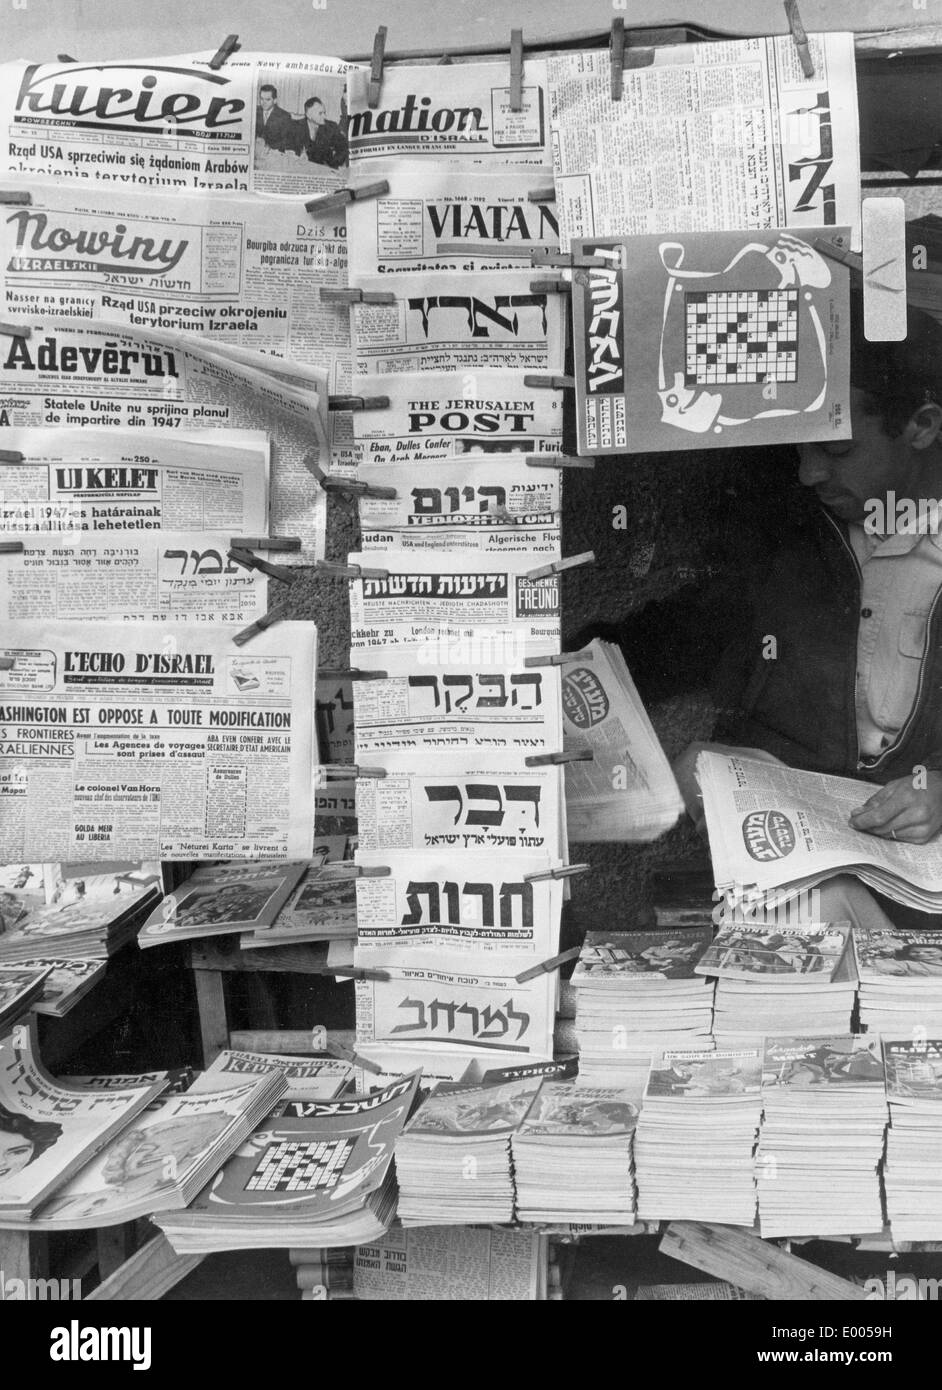 Newsstand in Tel Aviv - Stock Image